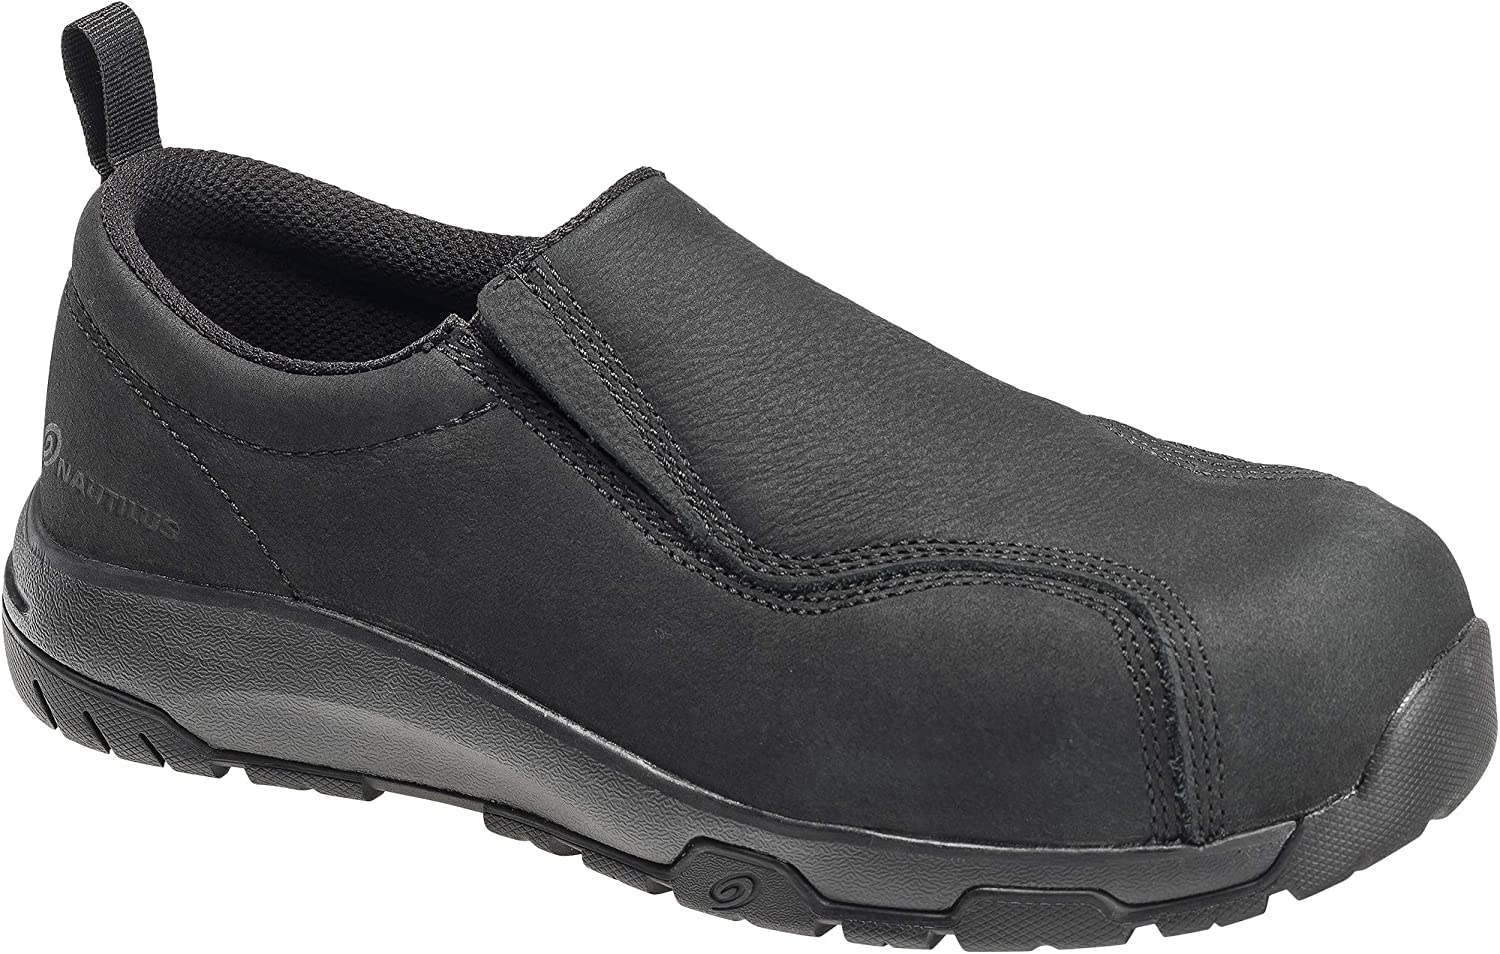 Nautilus 1646 Women's Slip-On Leather Slip Resistant ESD Work Shoe - Carbon Safety Toe